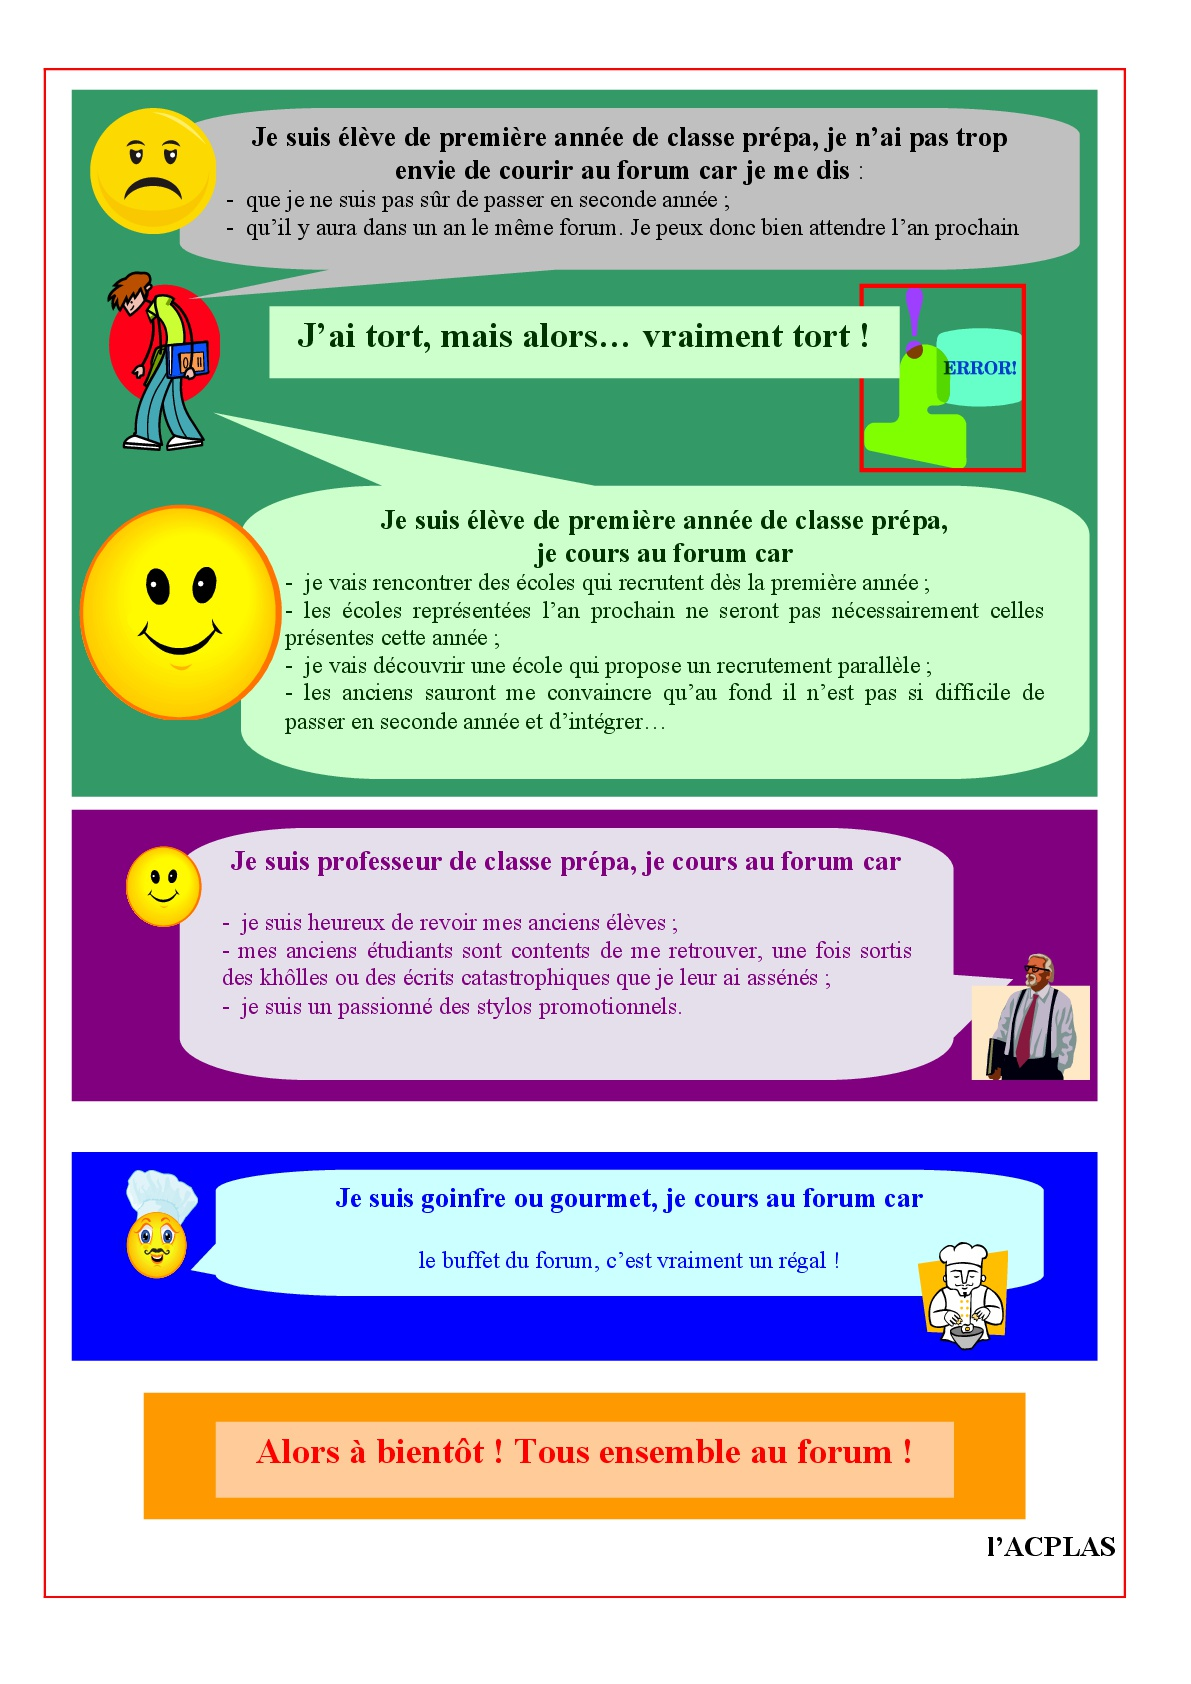 difference between rencontrer and retrouver